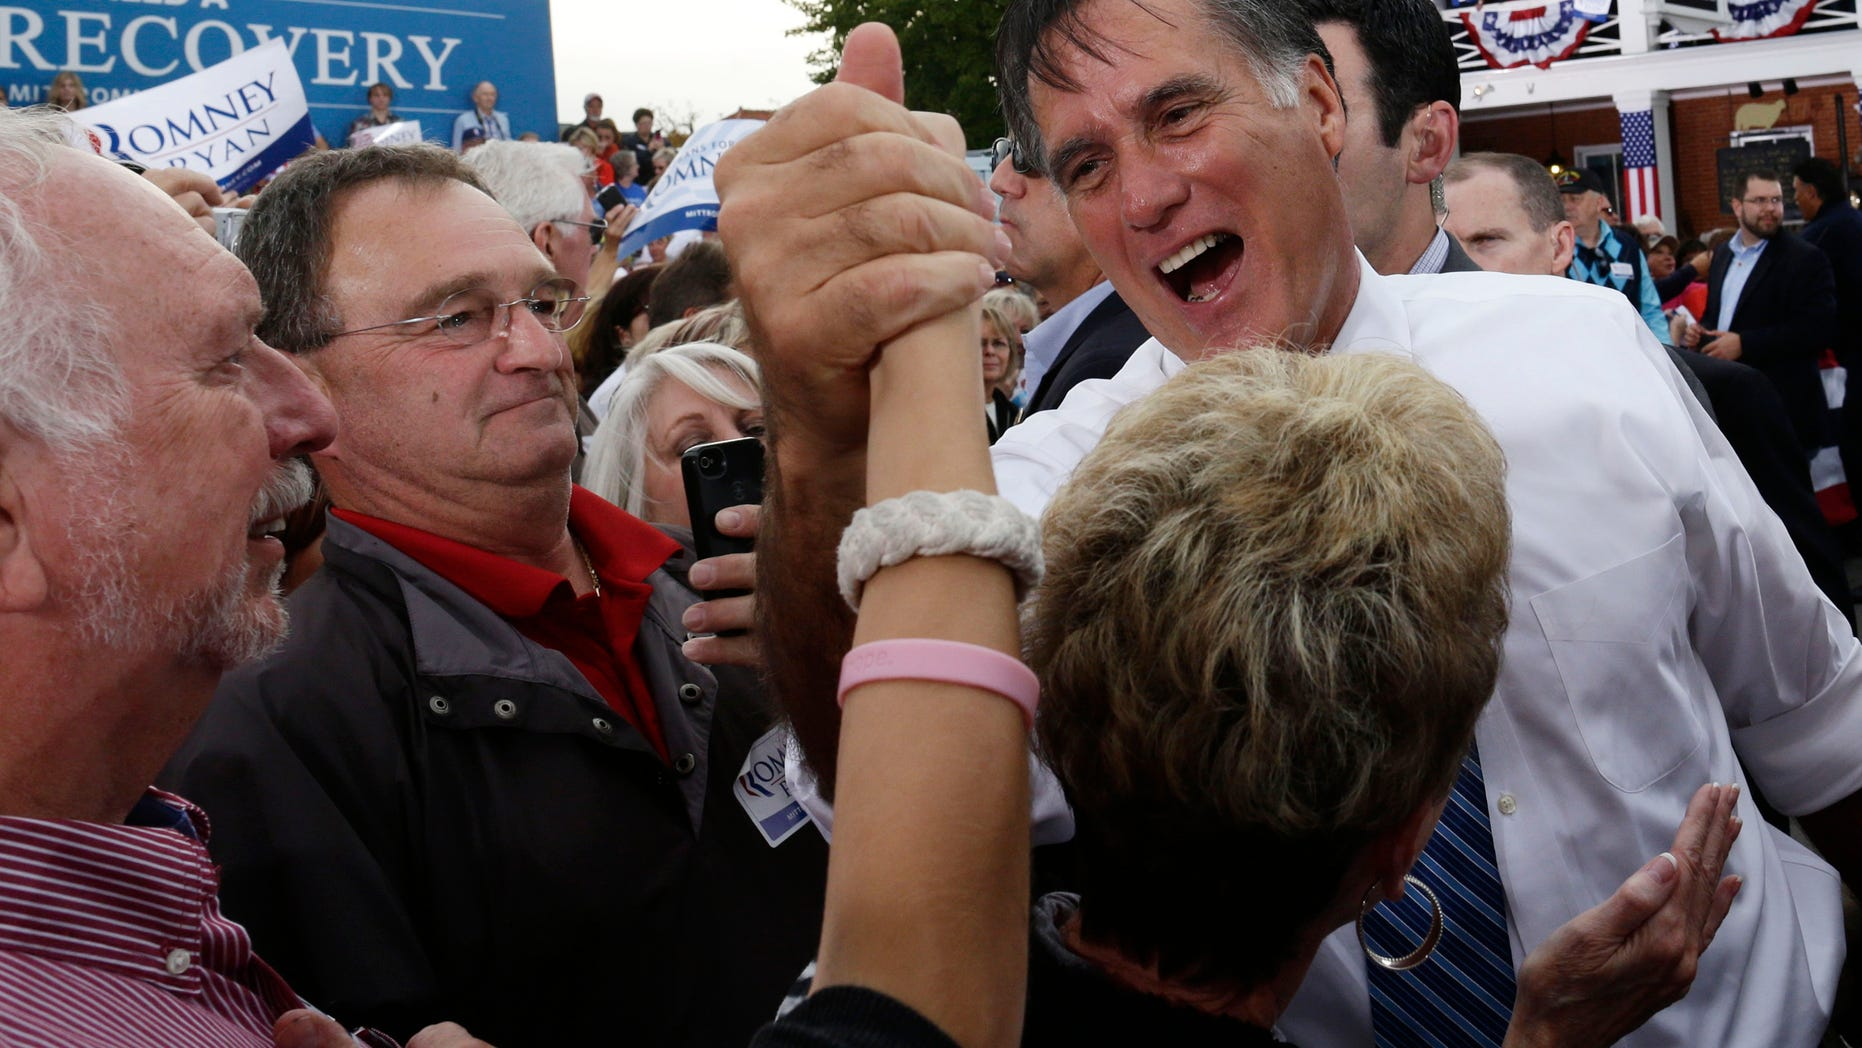 Saturday, Oct. 13, 2012: Mitt Romney campaigns in front of the Golden Lamb Inn and Restaurant in Lebanon, Ohio.